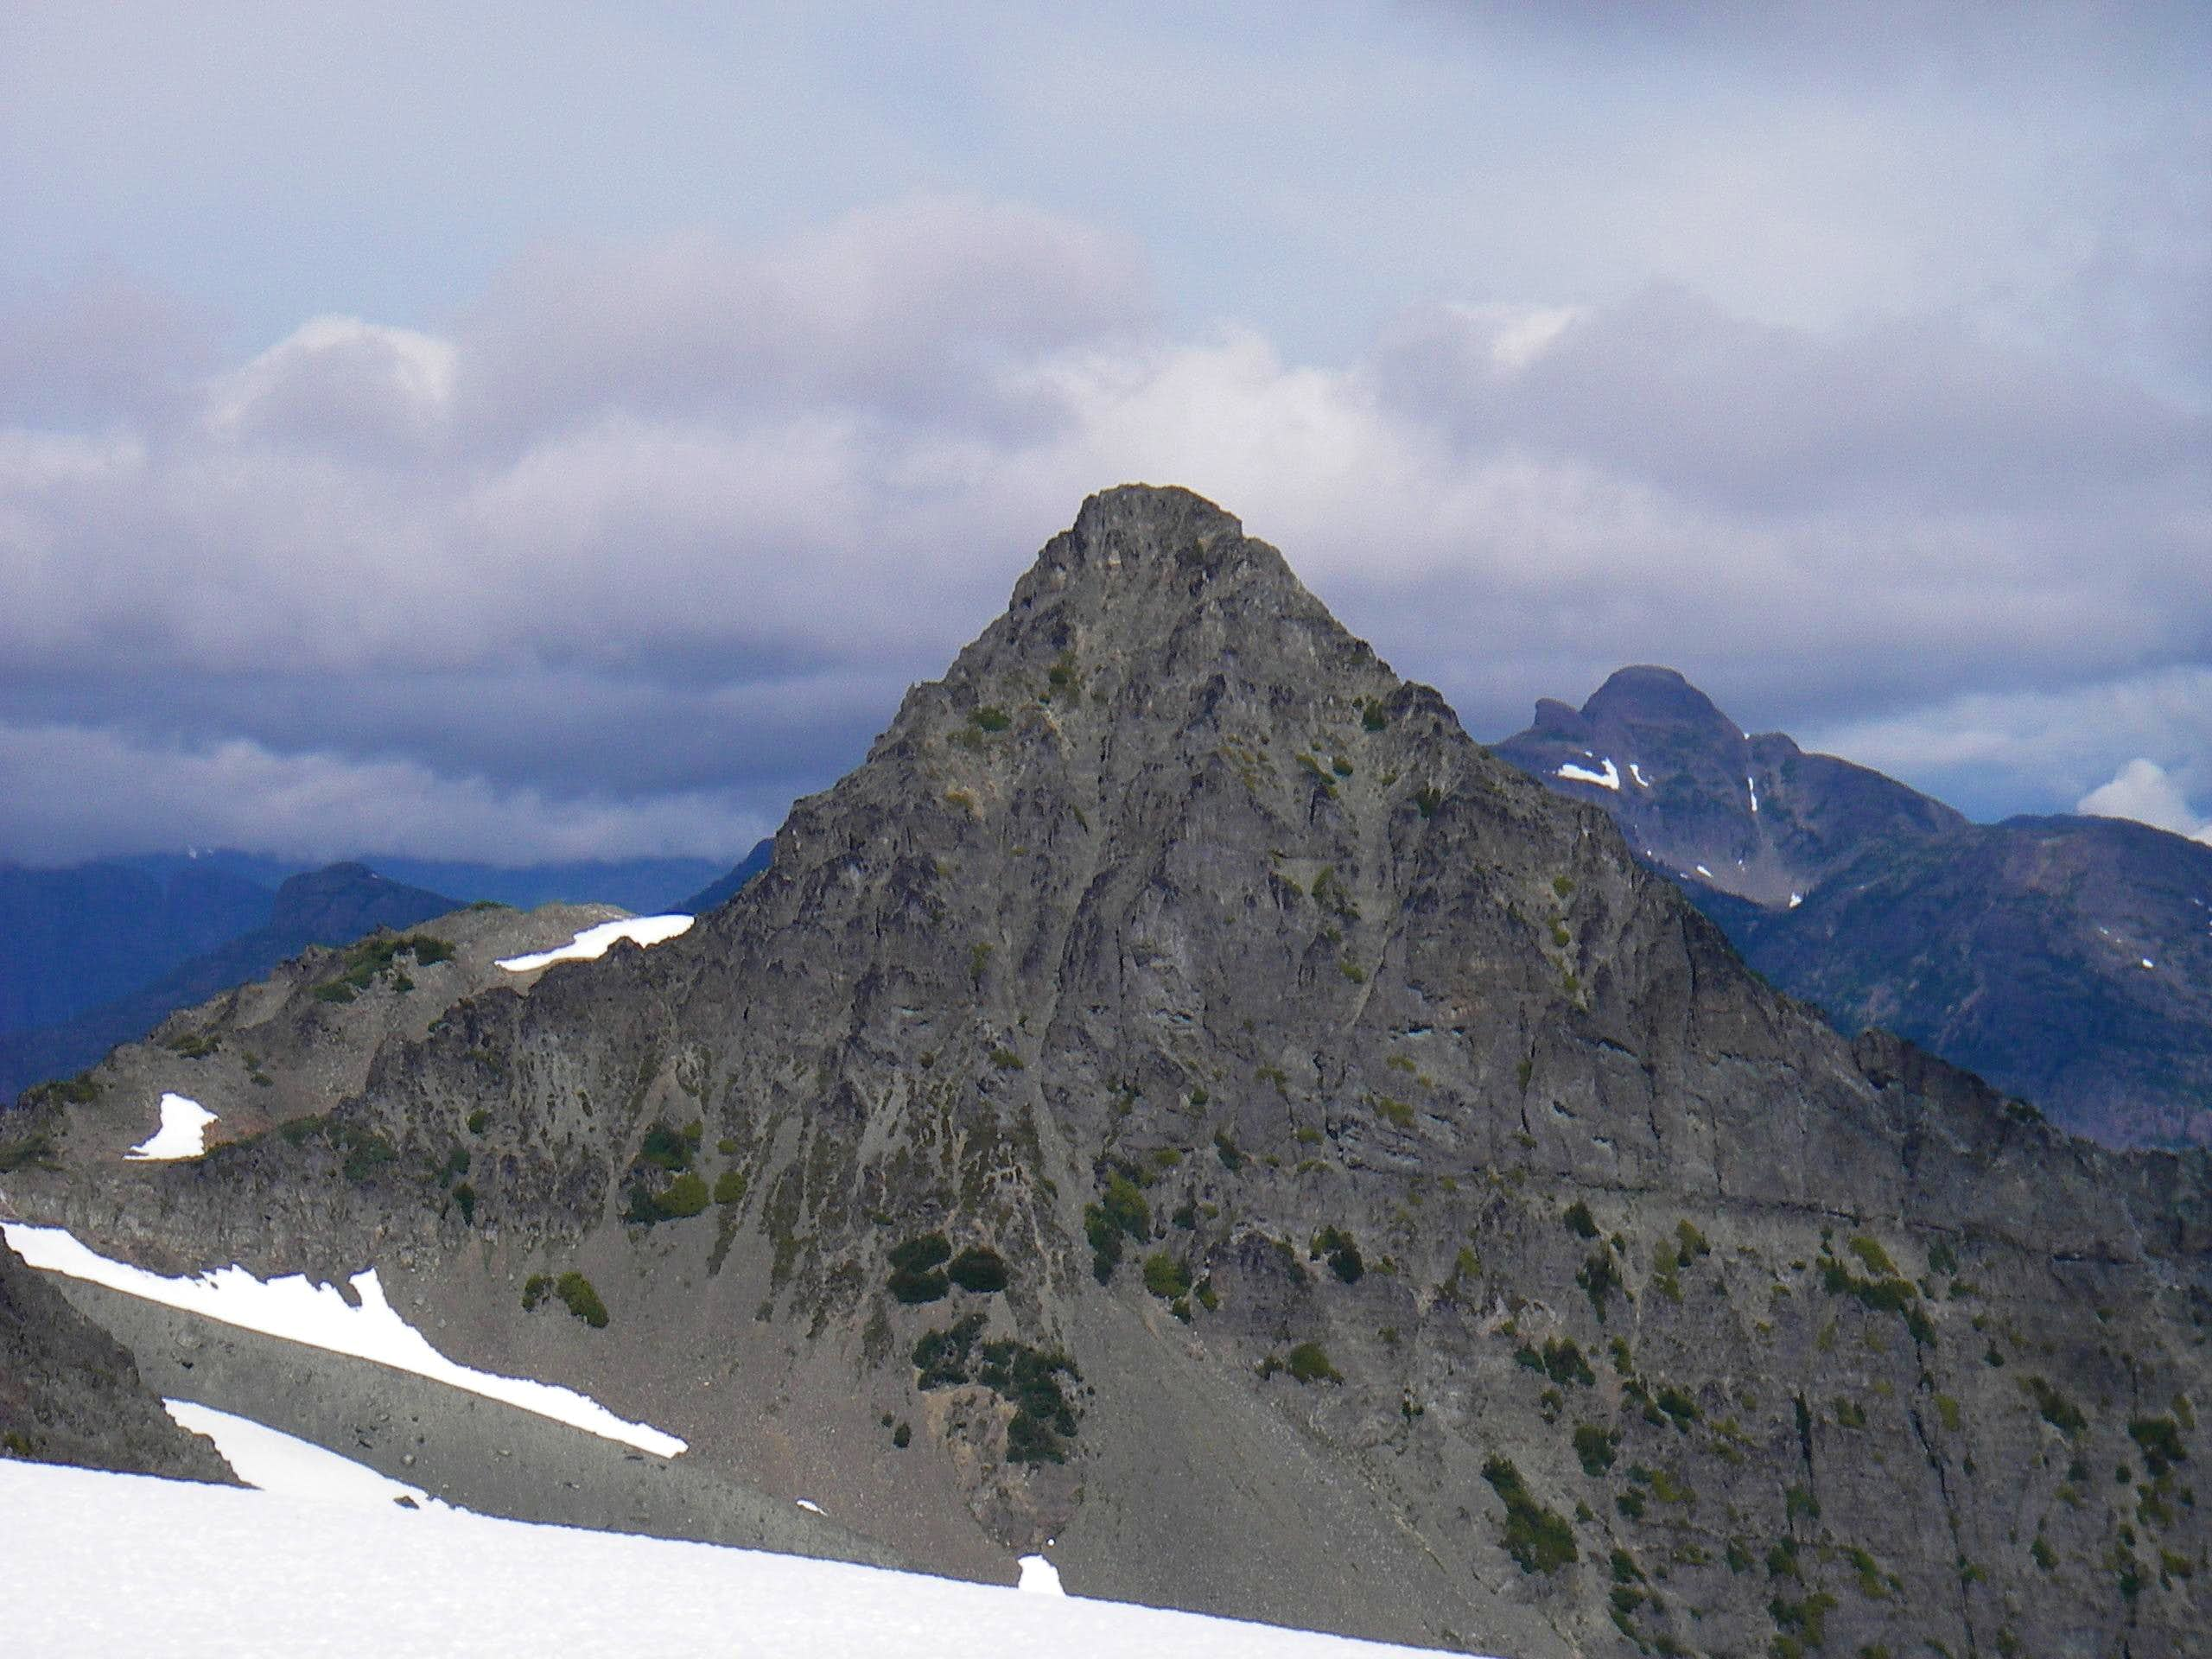 Mt Regan